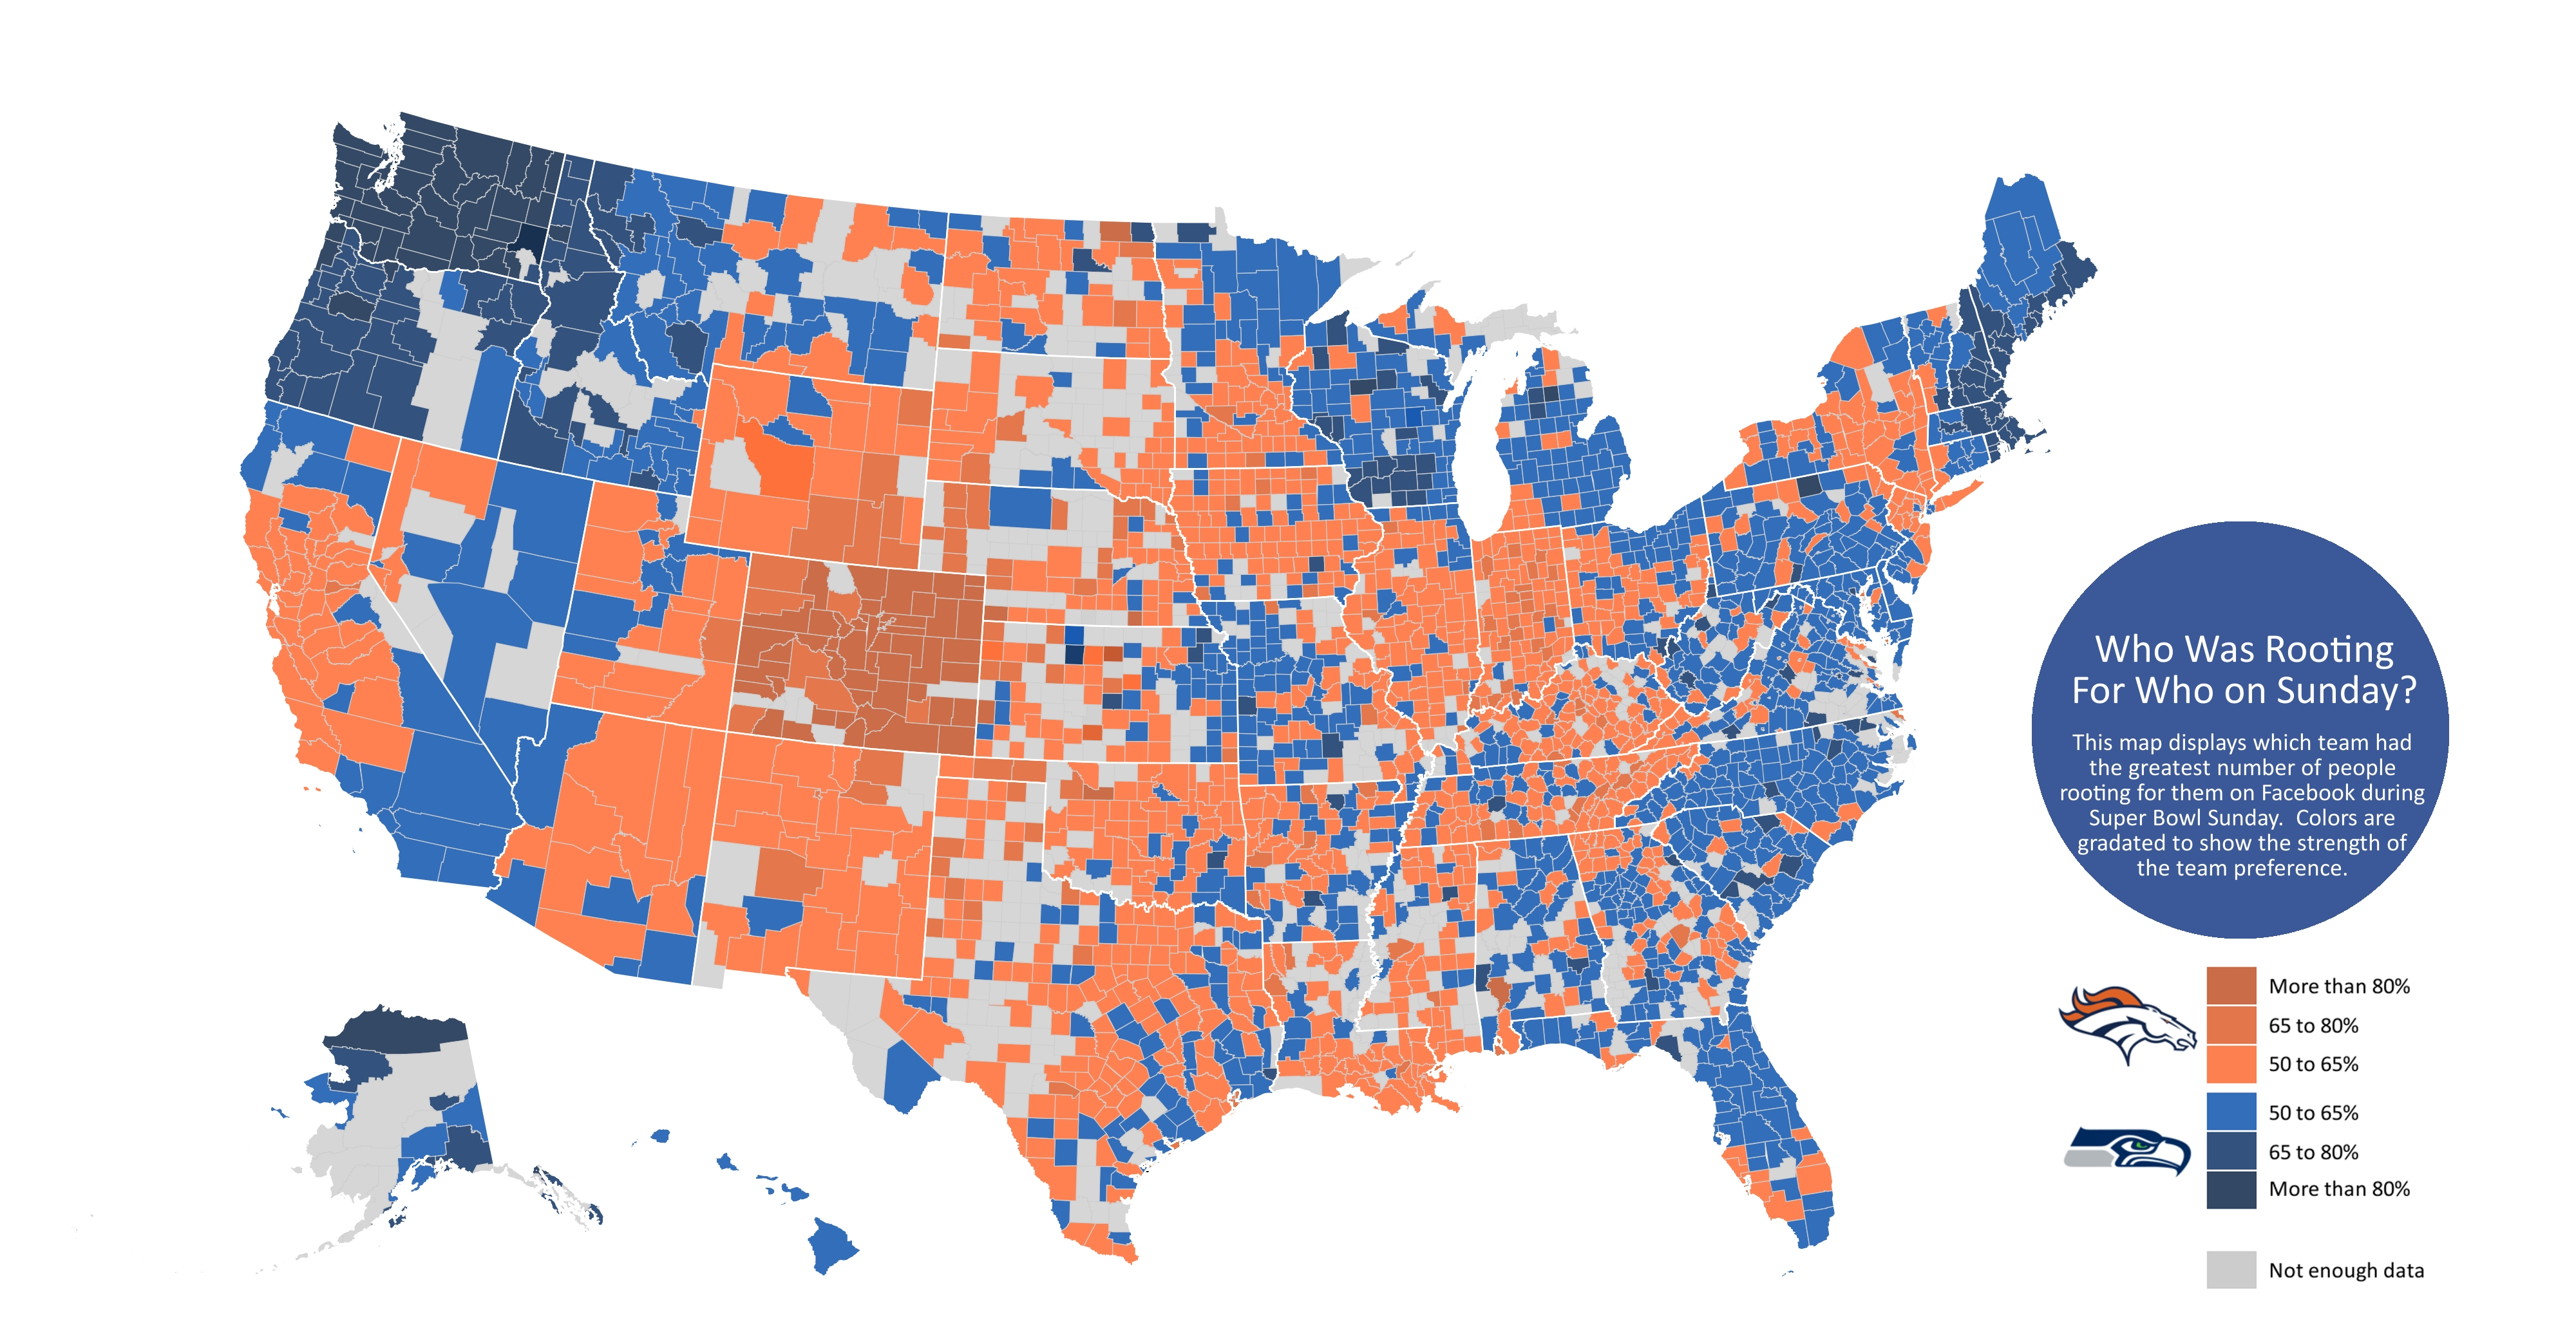 Facebook Maps Super Bowl Fan Engagement From 185 Million throughout Super Bowl Rooting Map